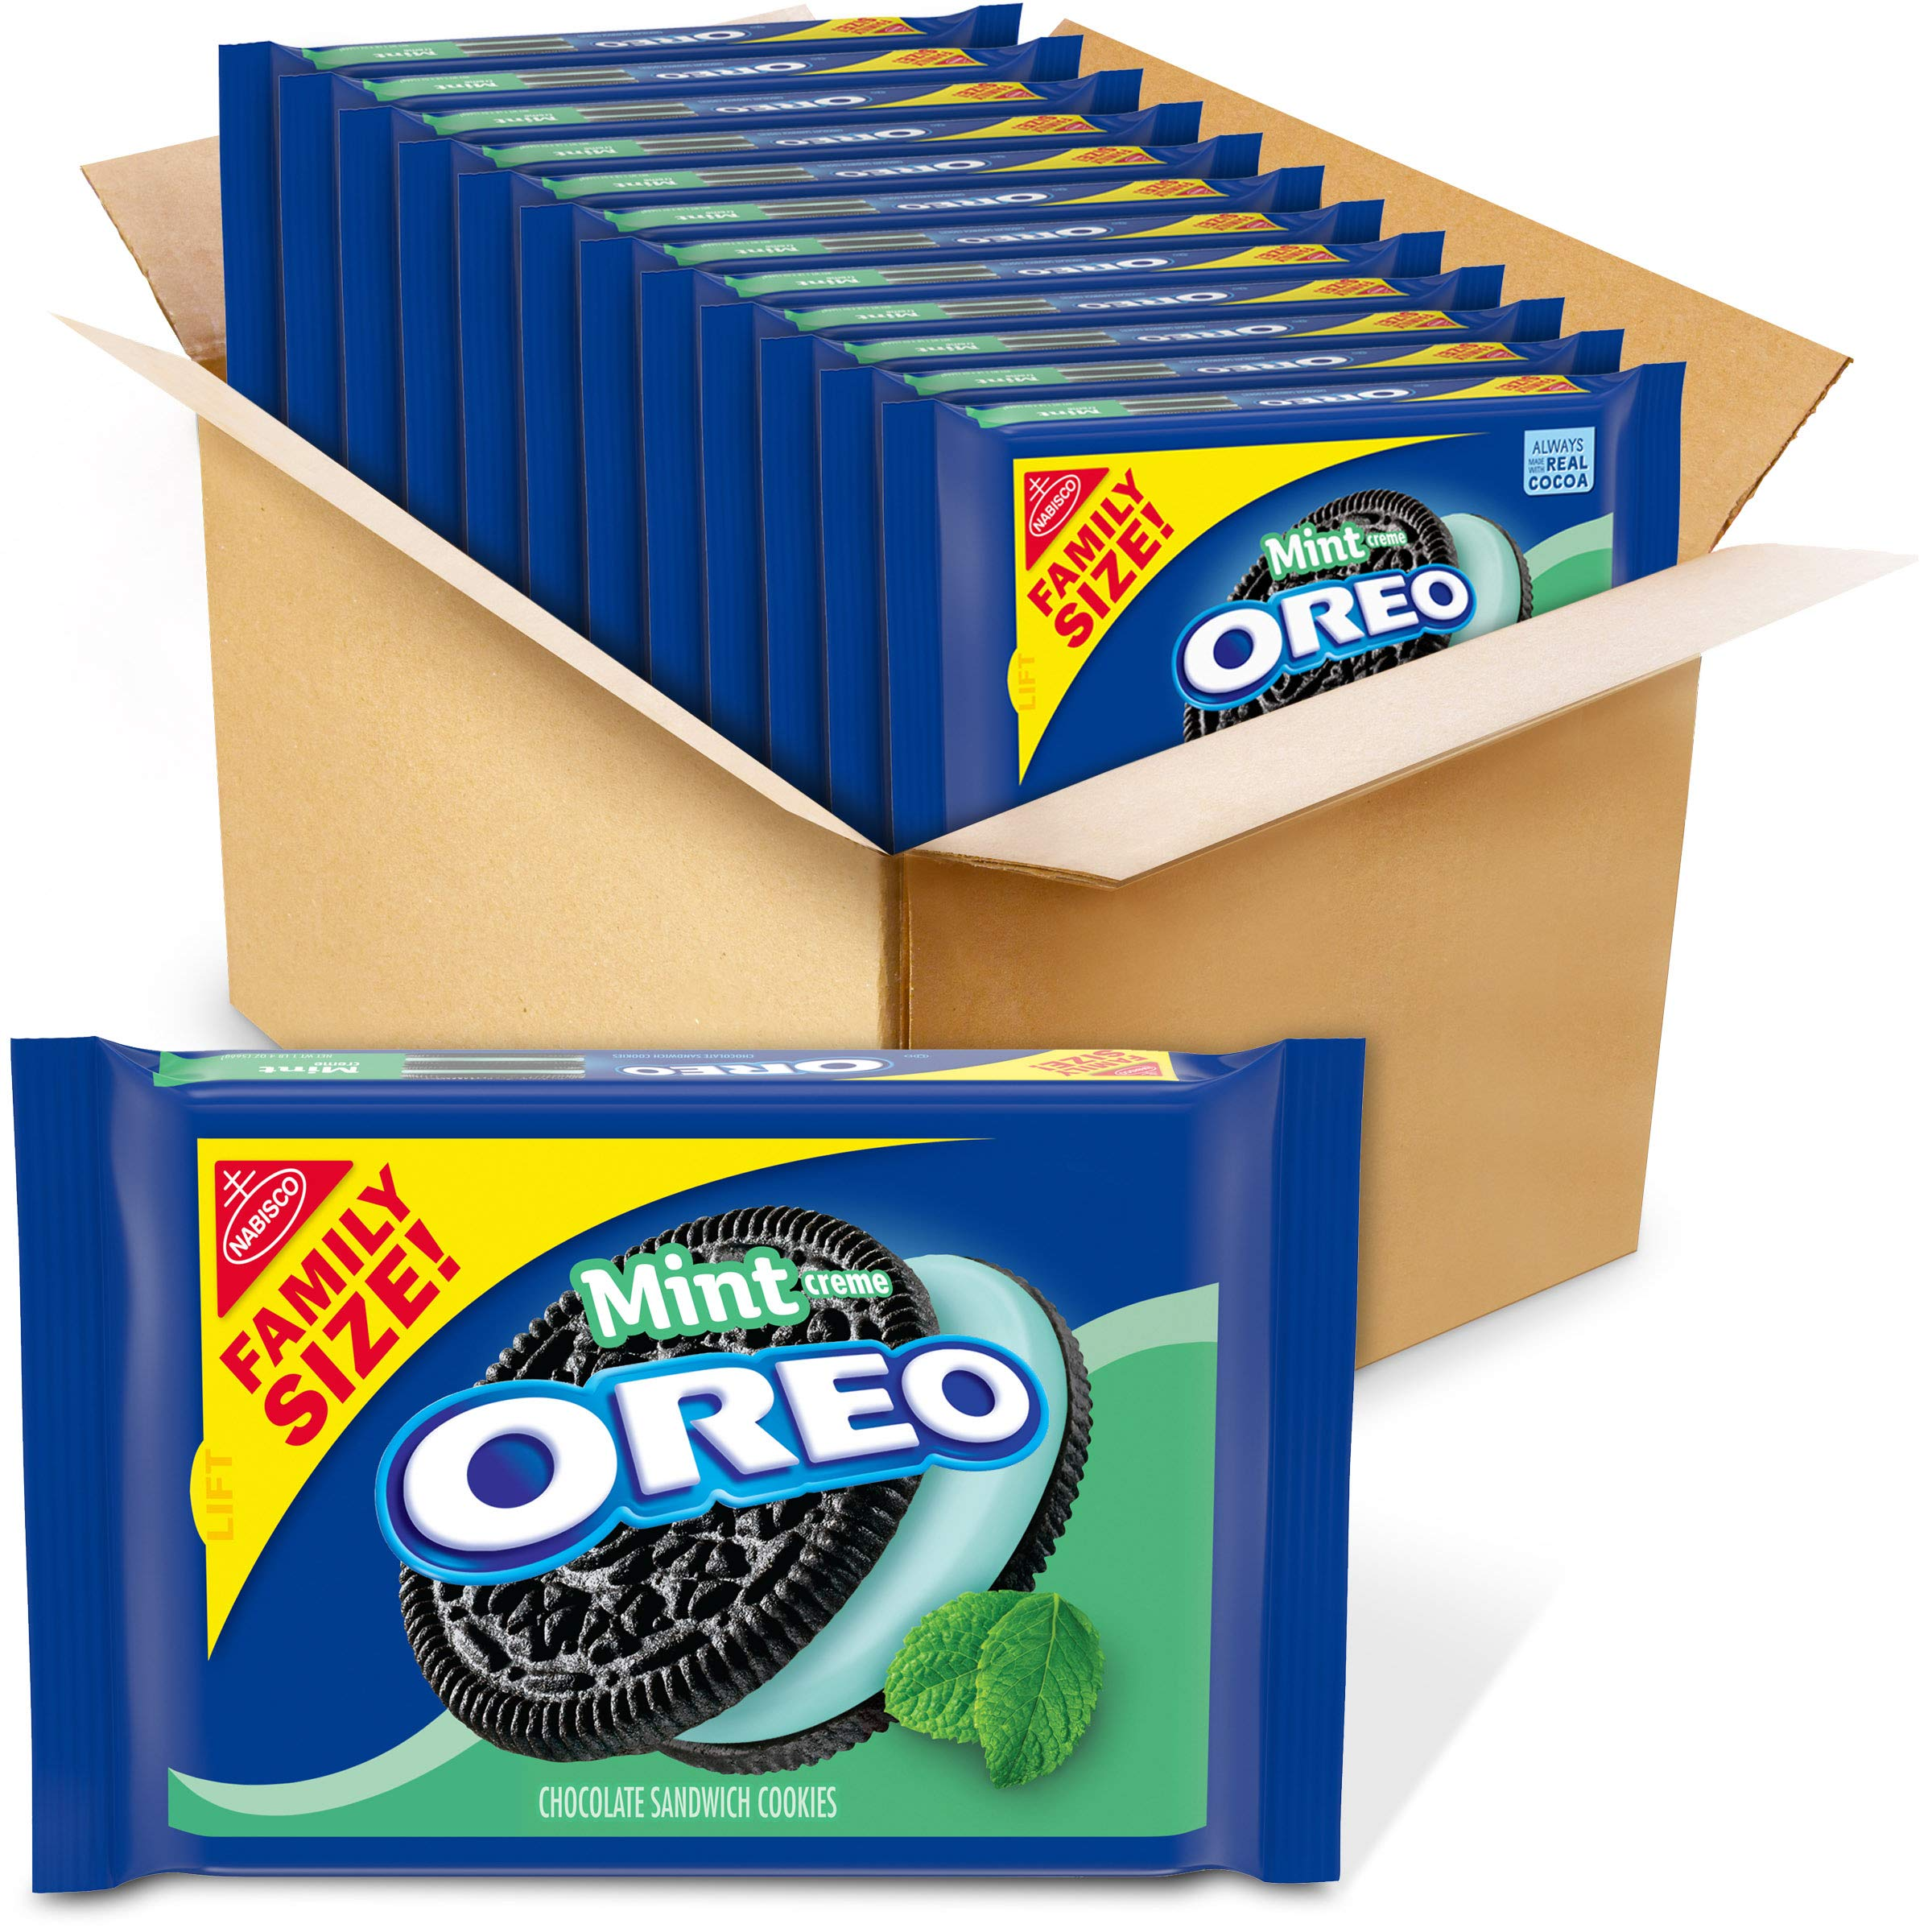 OREO Mint Flavored Creme Chocolate Sandwich Cookies, Family Size, 12 - 20 oz Packs